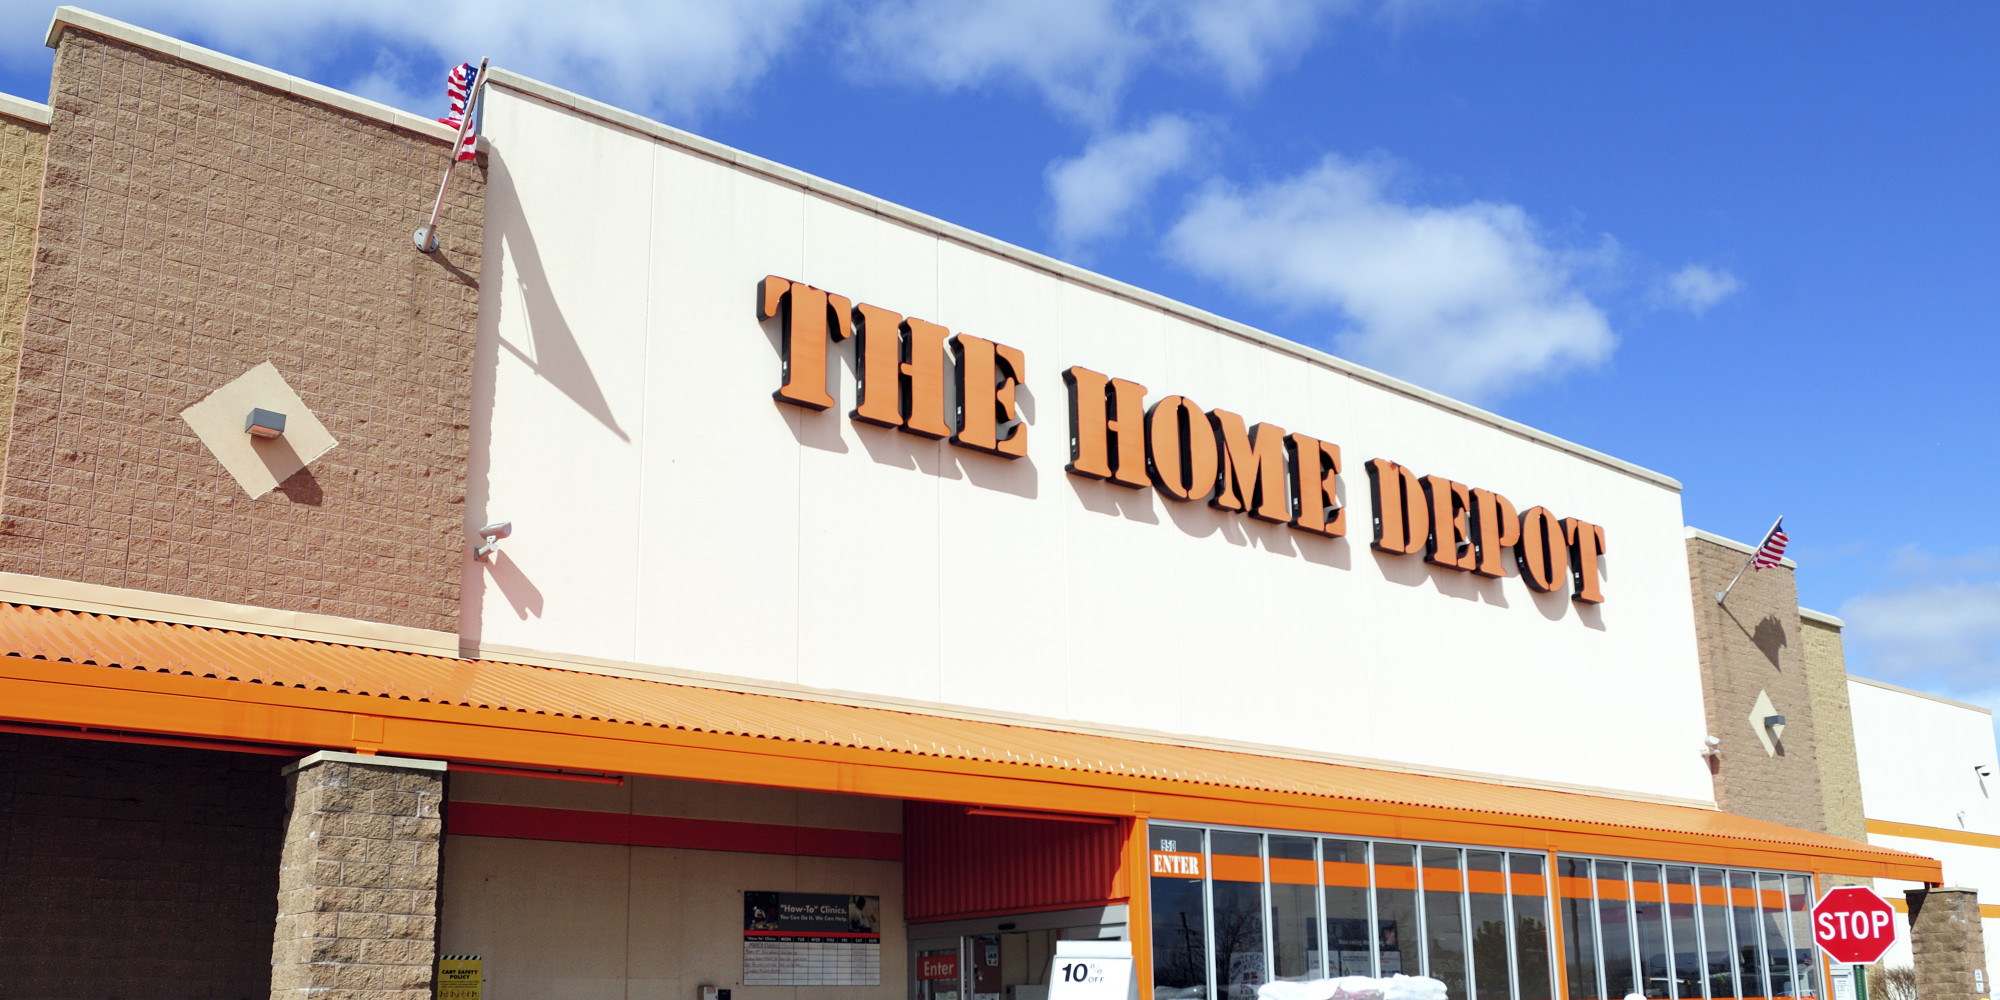 Home Depot Tar ed Gay Employees For Firing After Financial